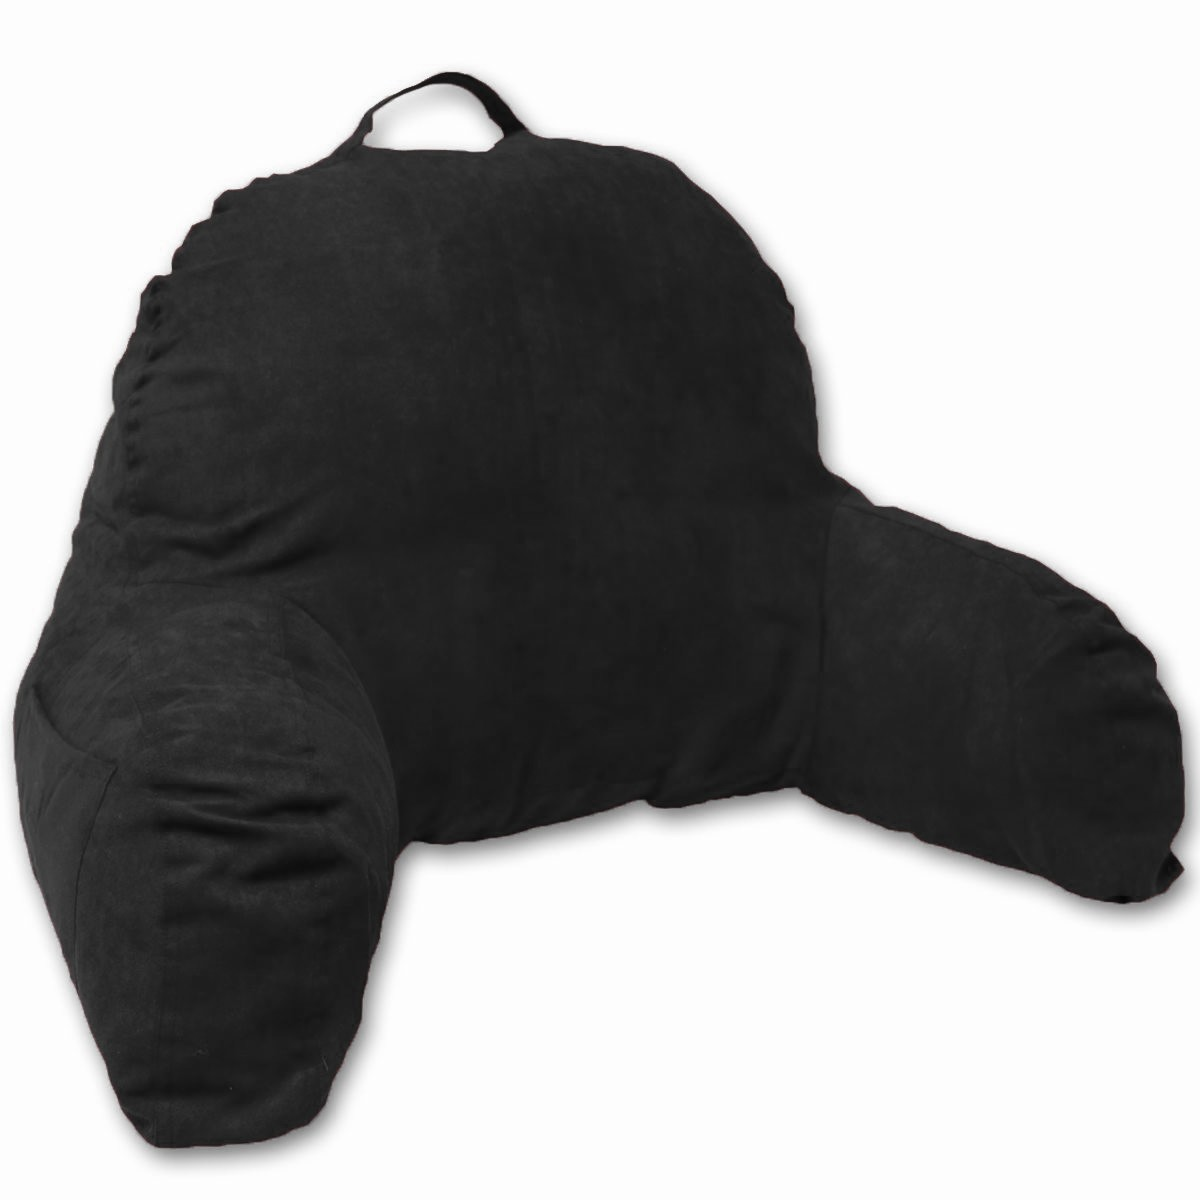 Microsuede Bedrest Pillow Best Bed Rest Pillows In 10